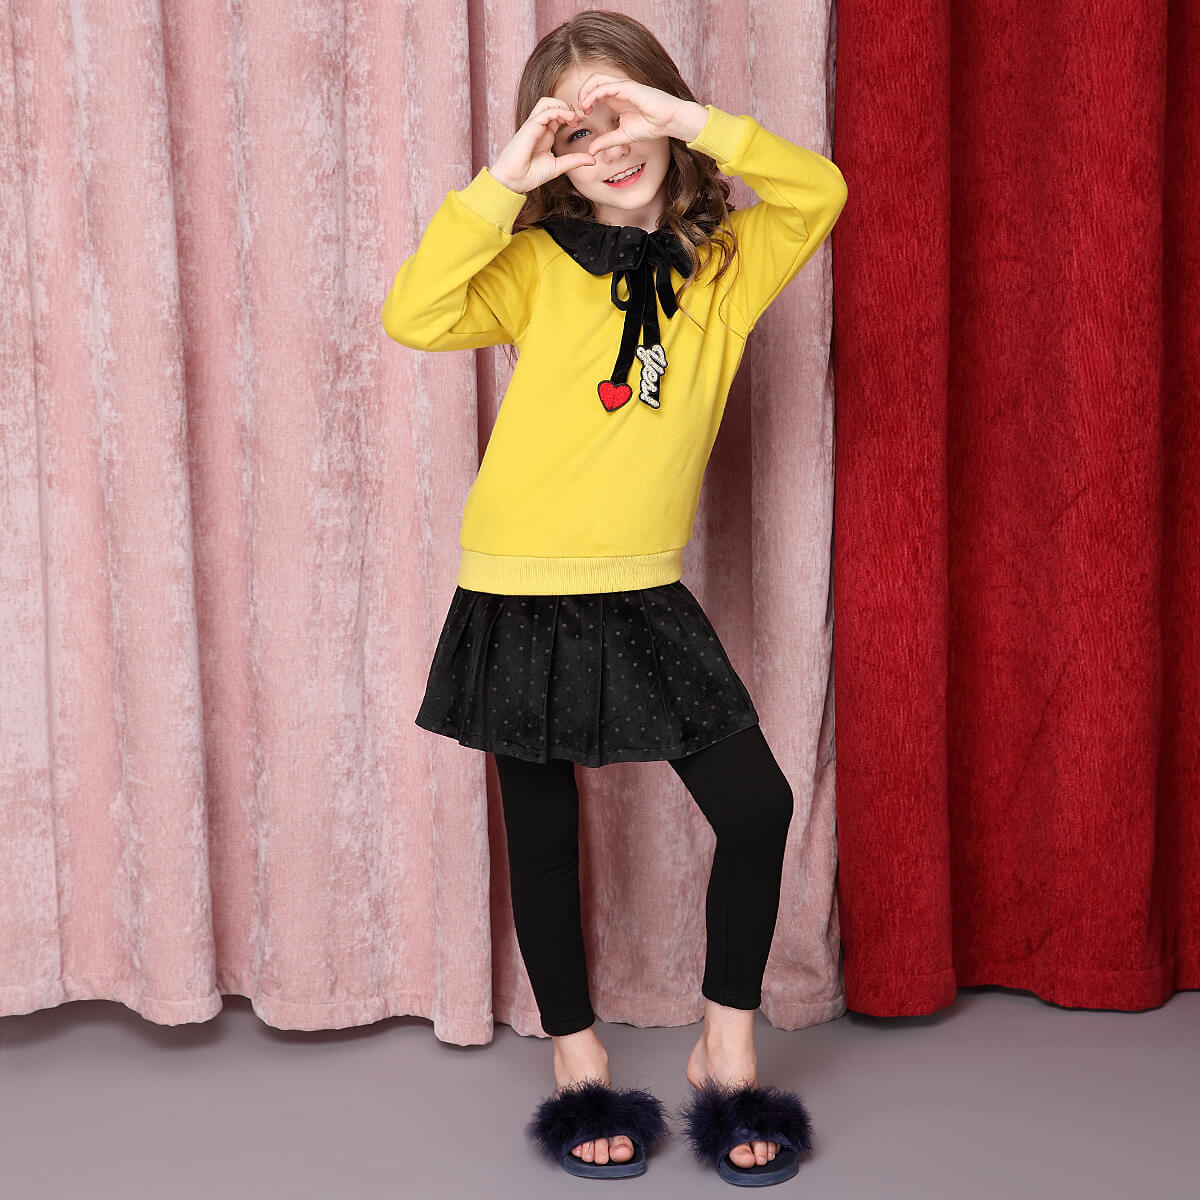 Baby girl collar training body suit 2018 autumn suit new fashion pleated skirt pants two pieces dhl ems 2 lots 1pc new schneider xs4p18pa340l1 a2